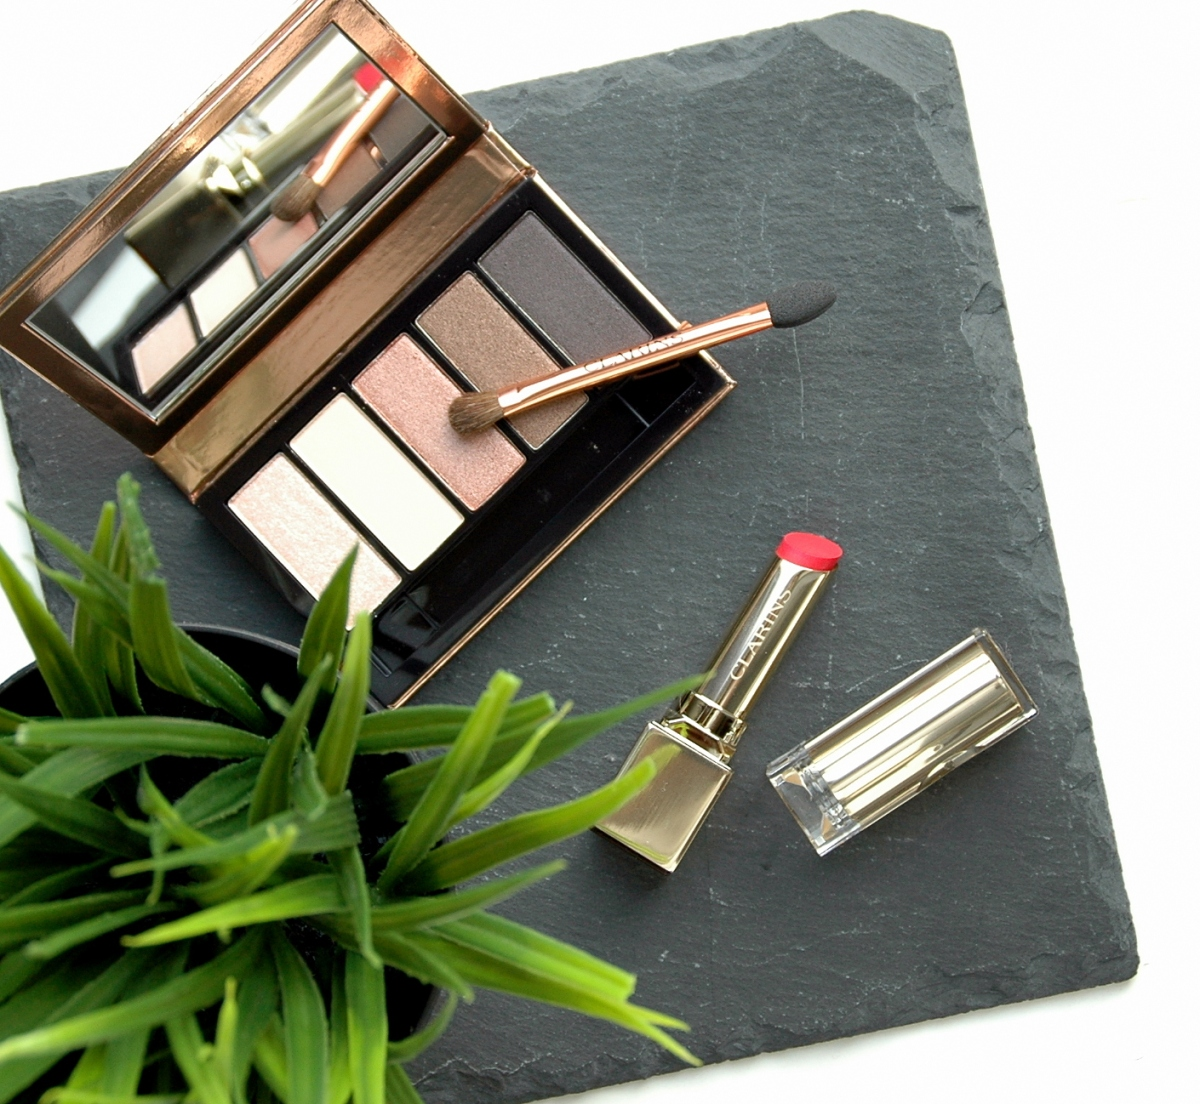 Clarins Instant Glow Spring Collection 2016 - Rouge Eclat Pink Cherry & 5 Couleurs Palette Naturel Glow